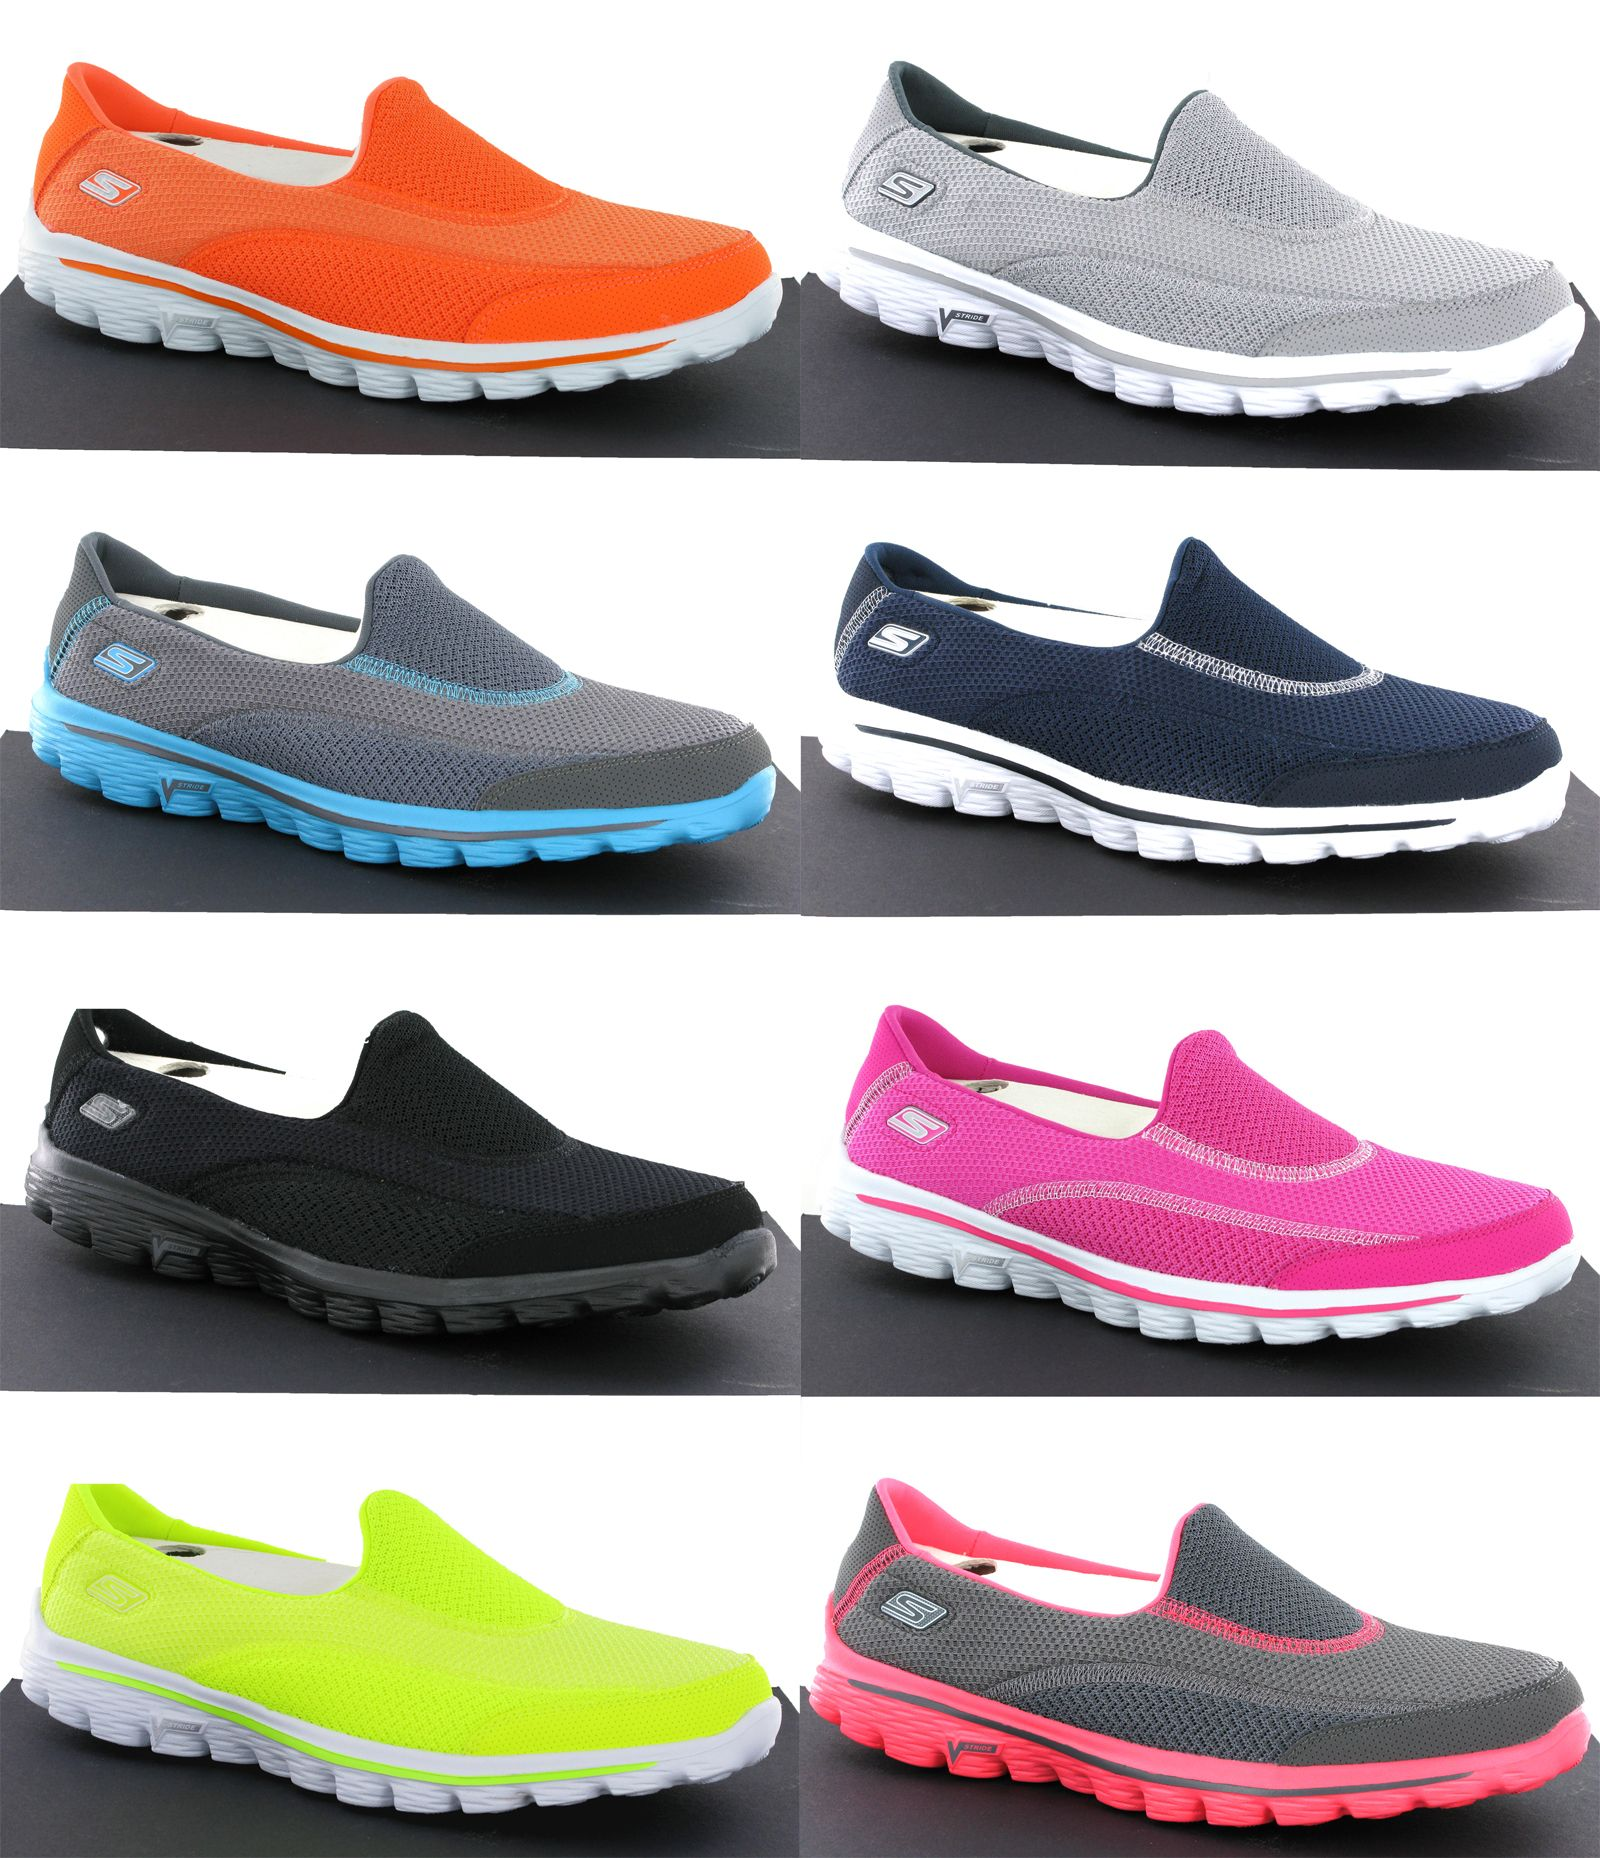 skechers shoe material